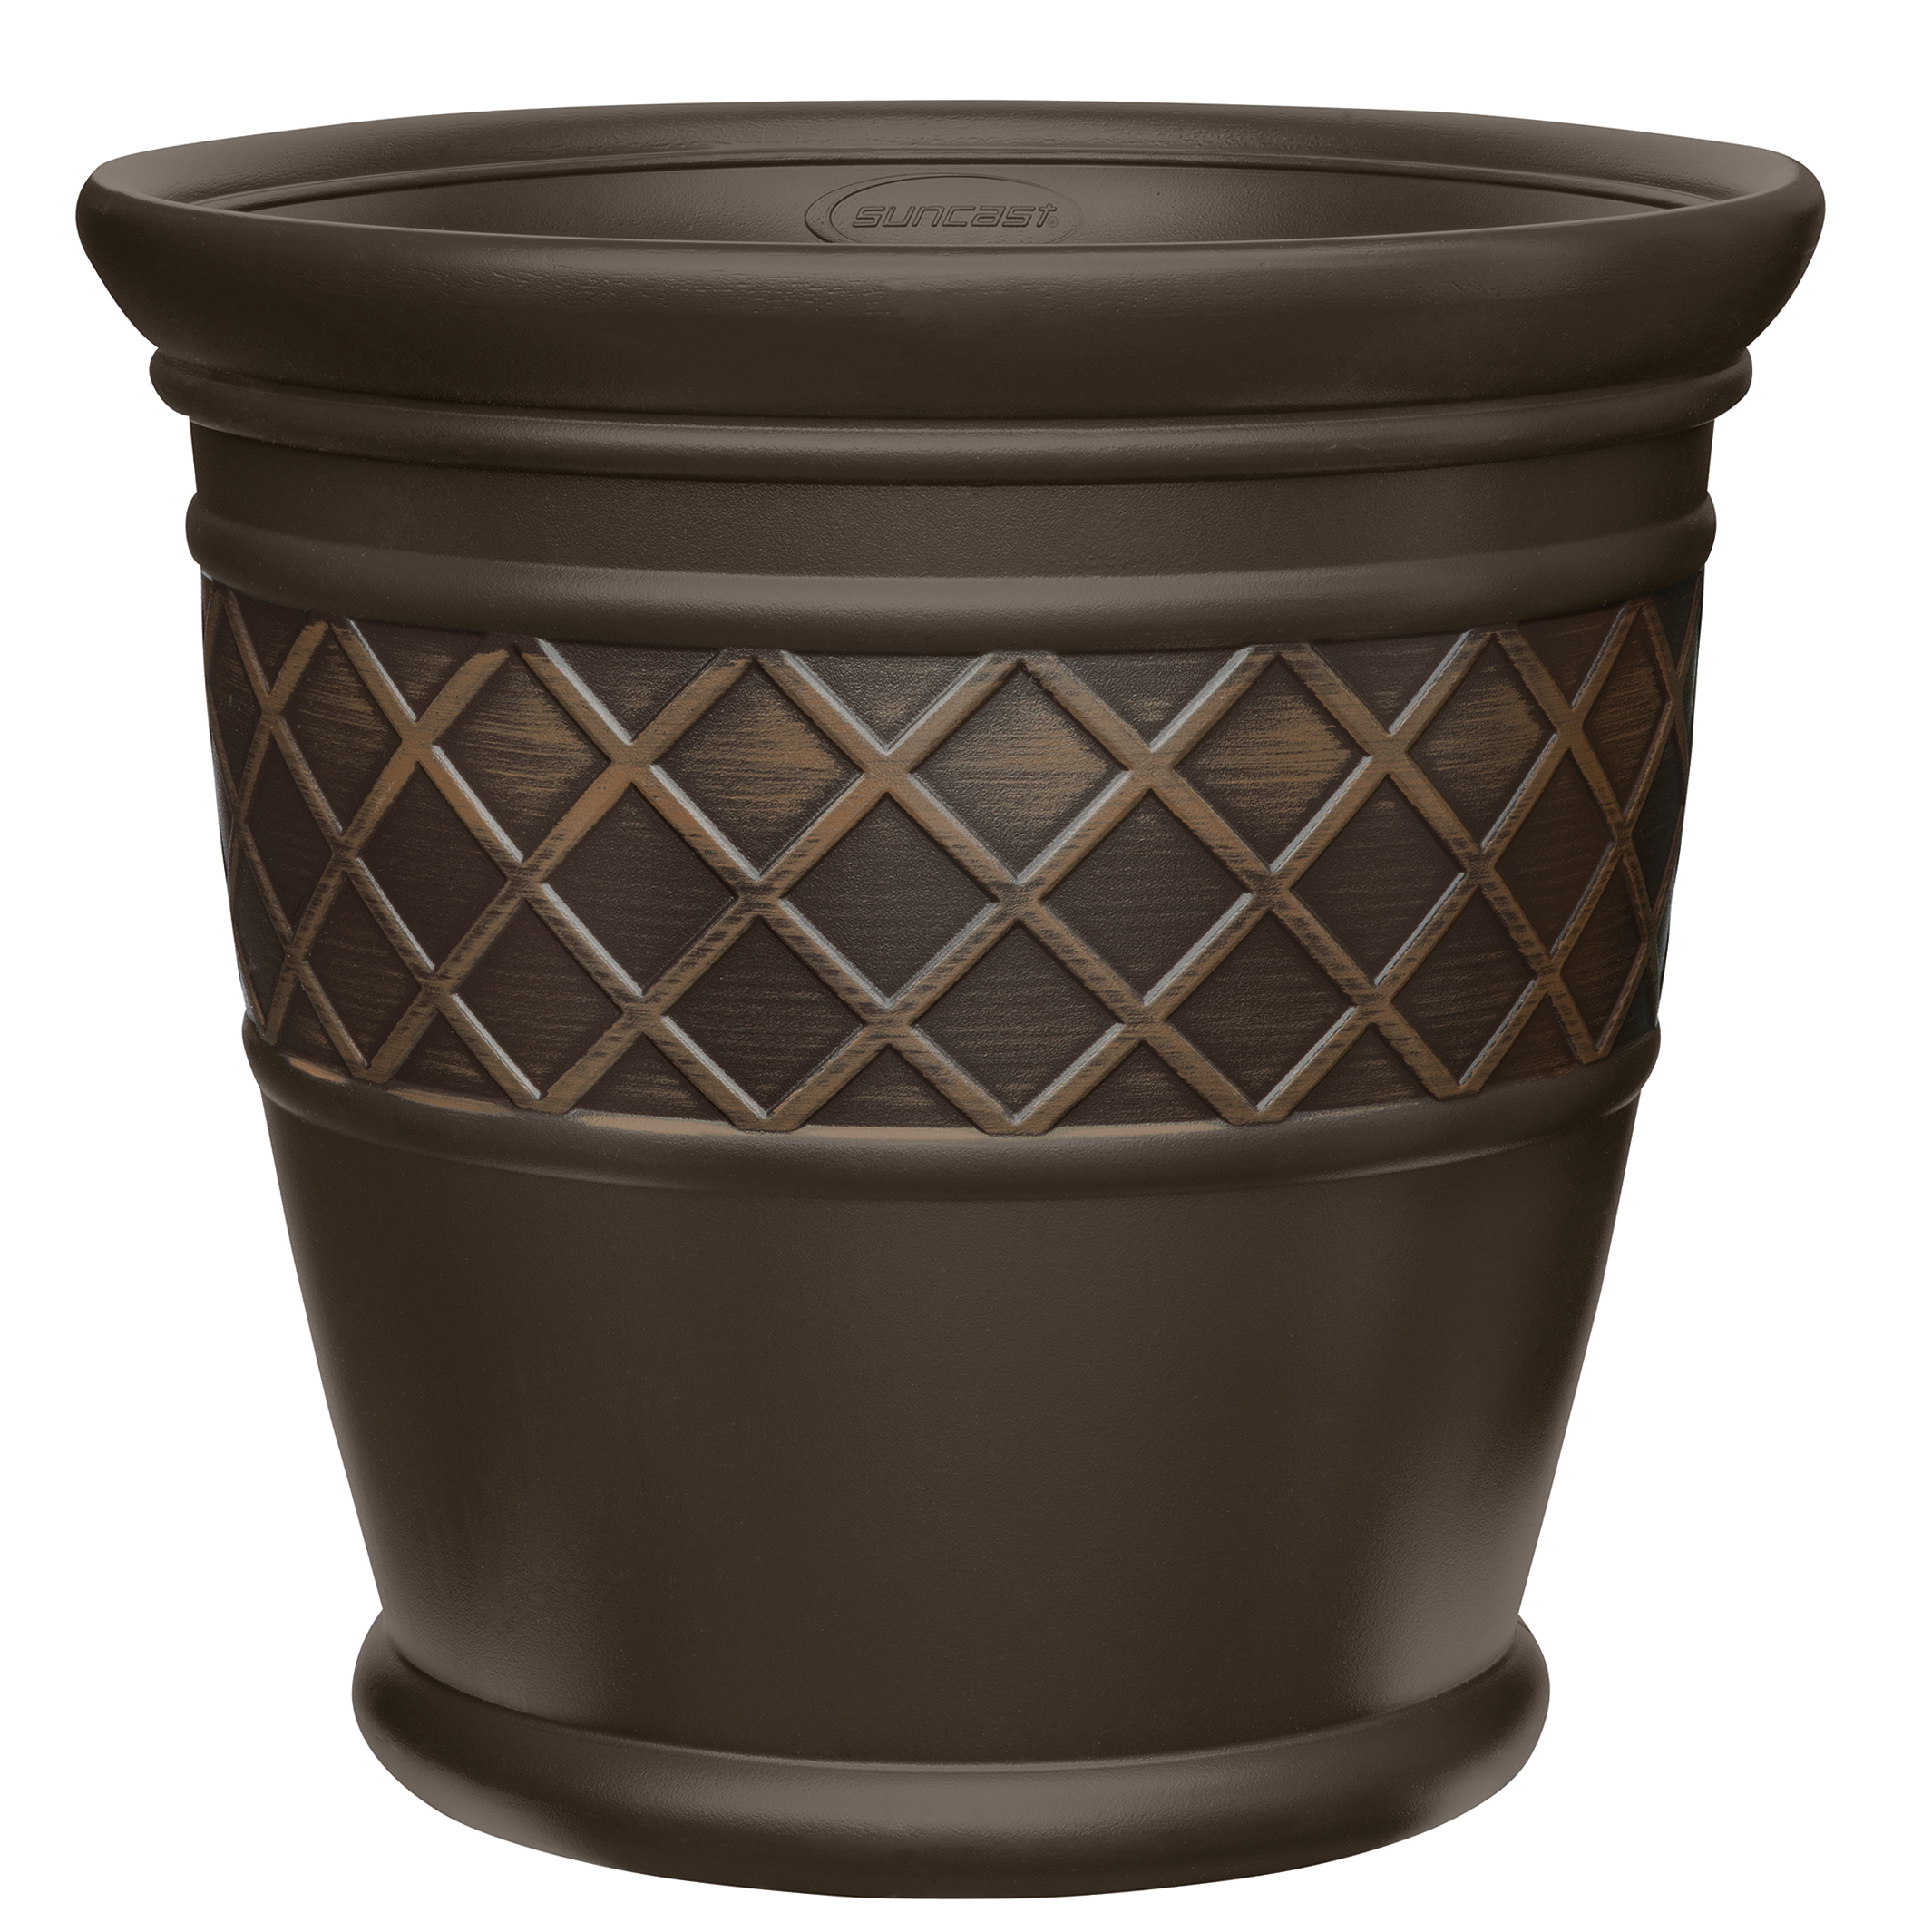 "Better Homes and Gardens 22"" Lattice Planter"